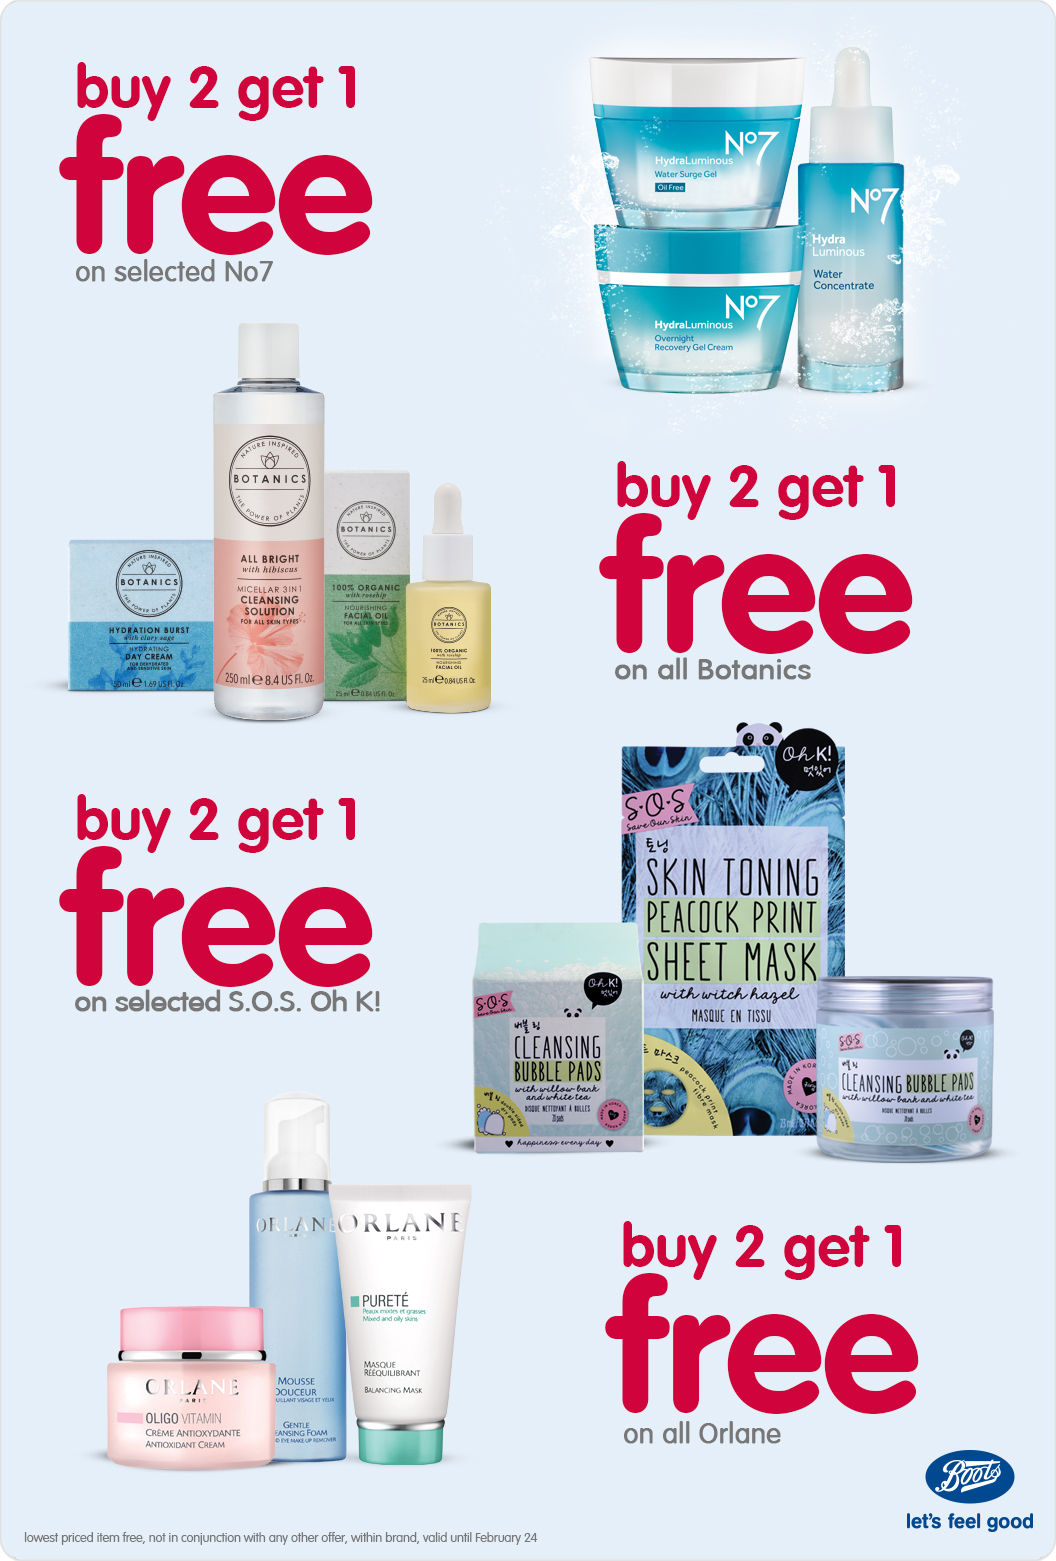 Boots Buy 2 Get 1 Free offer - Dubaisavers